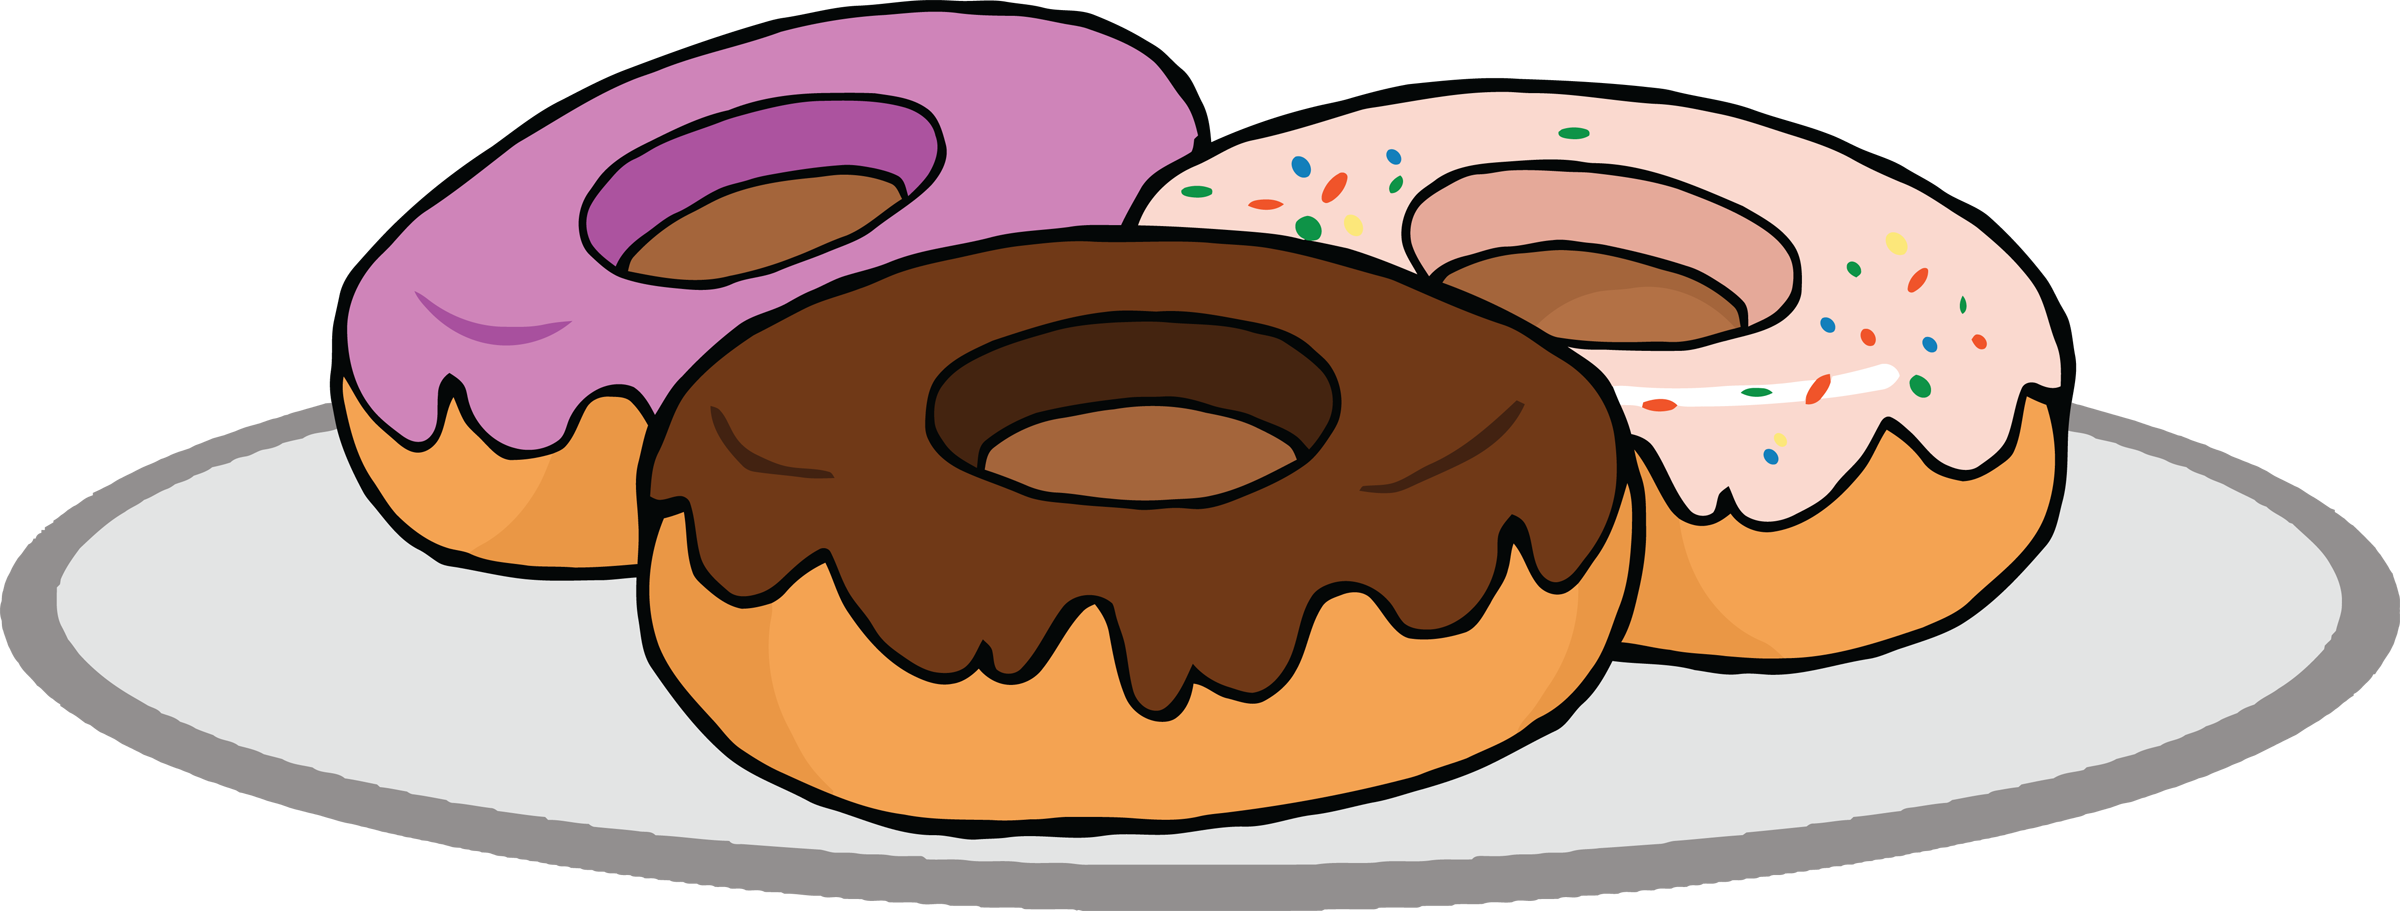 transparent Donuts frames illustrations hd. Cinnamon roll clipart cinnamon sugar.